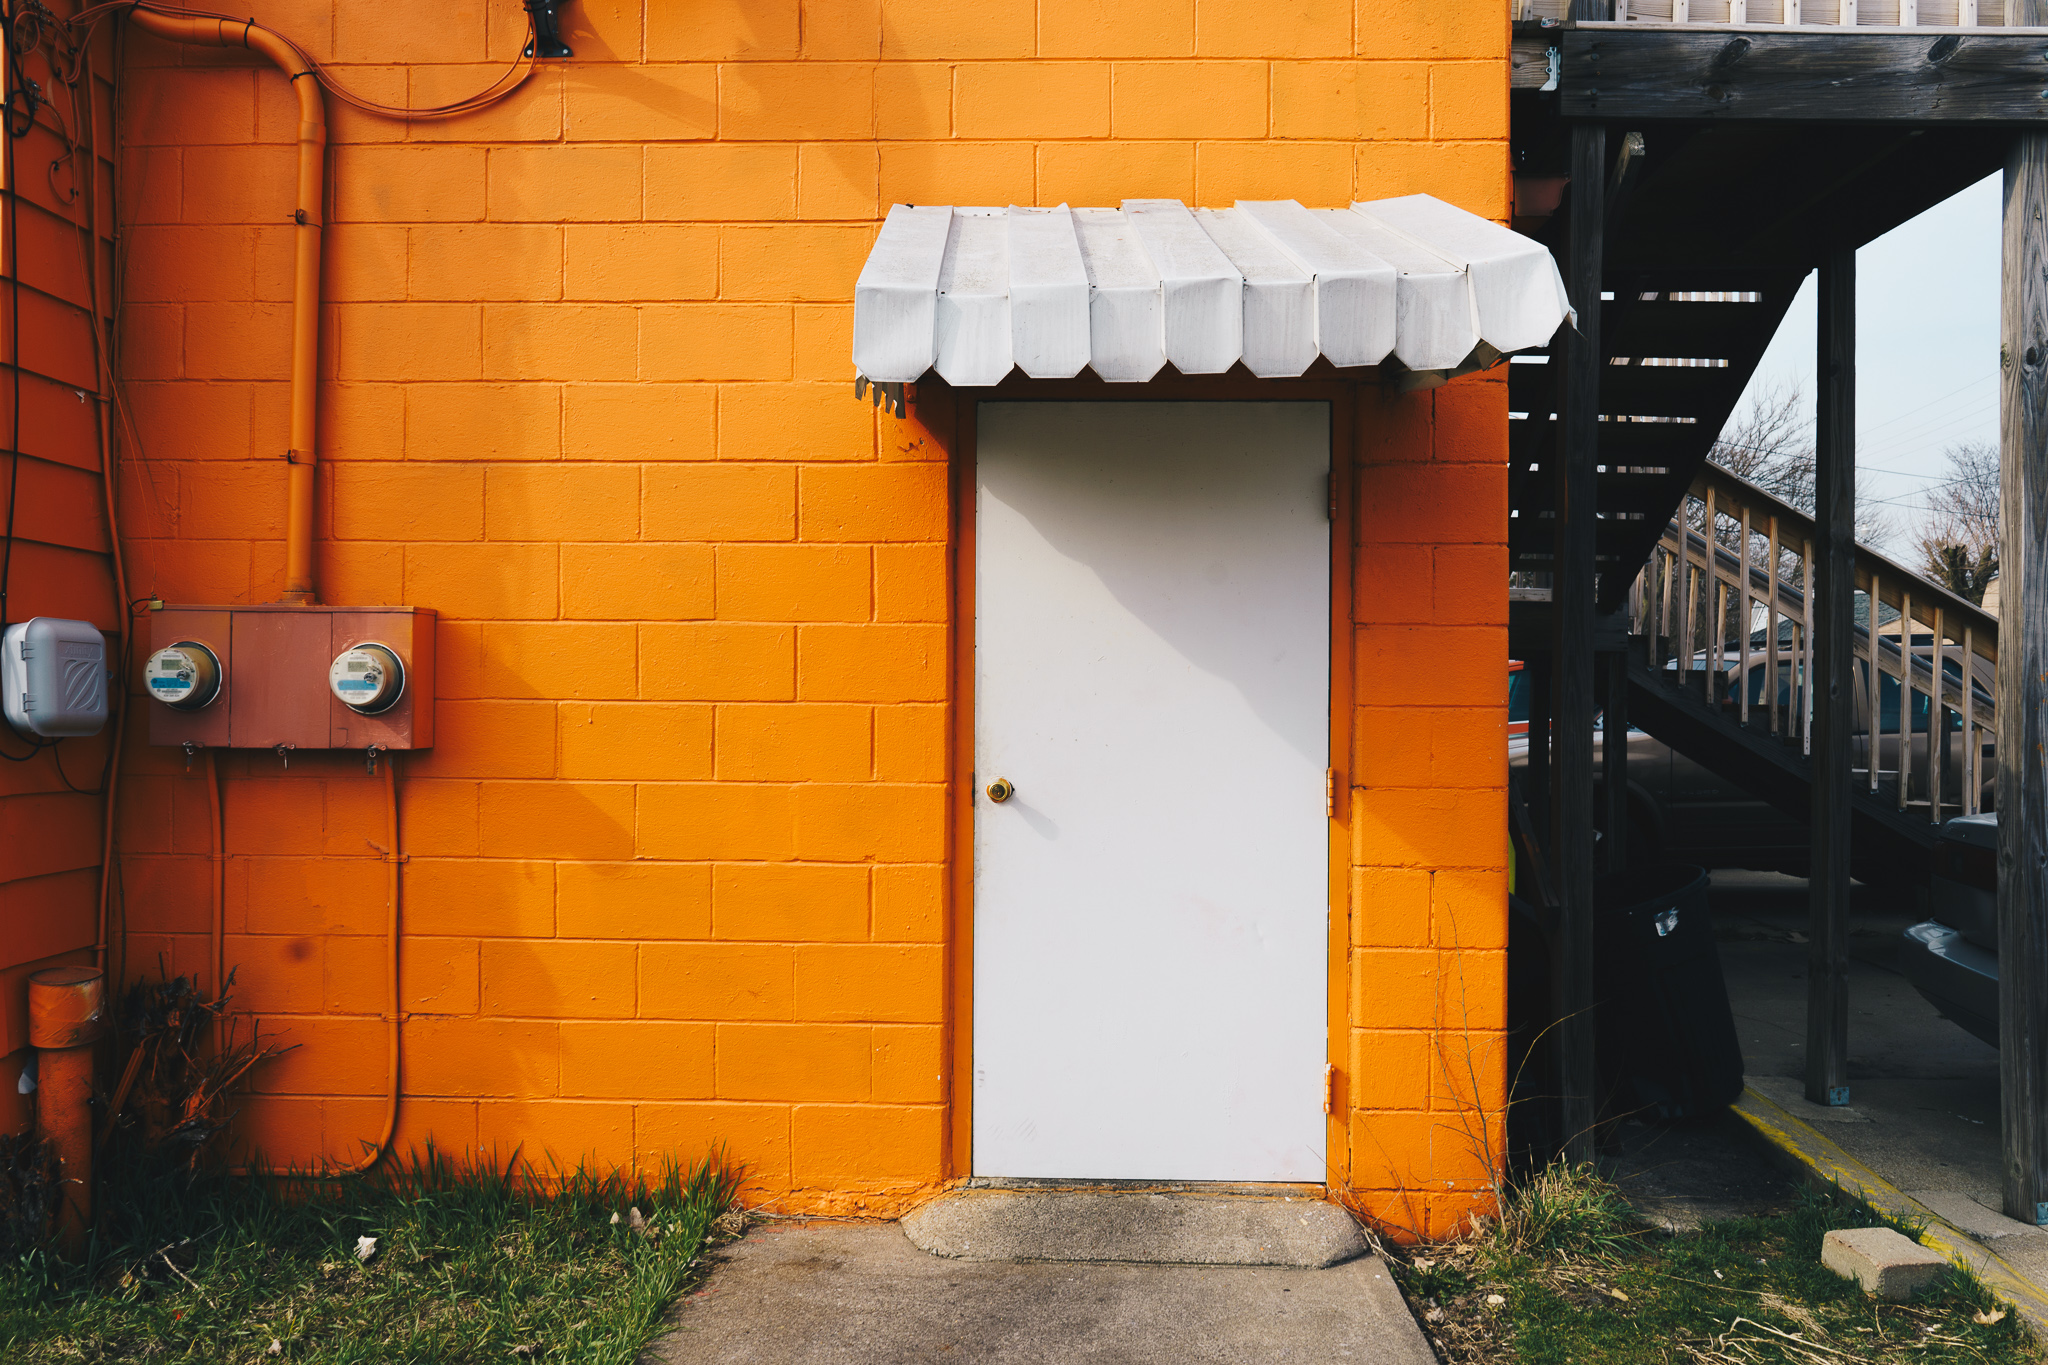 Ford Street No. 1   The side entrance to Juan Camaney, a nondescript Venezuelan restaurant on South Bend's West Side. This photograph was featured in our April 2018 story  Afternoon on Ford Street .